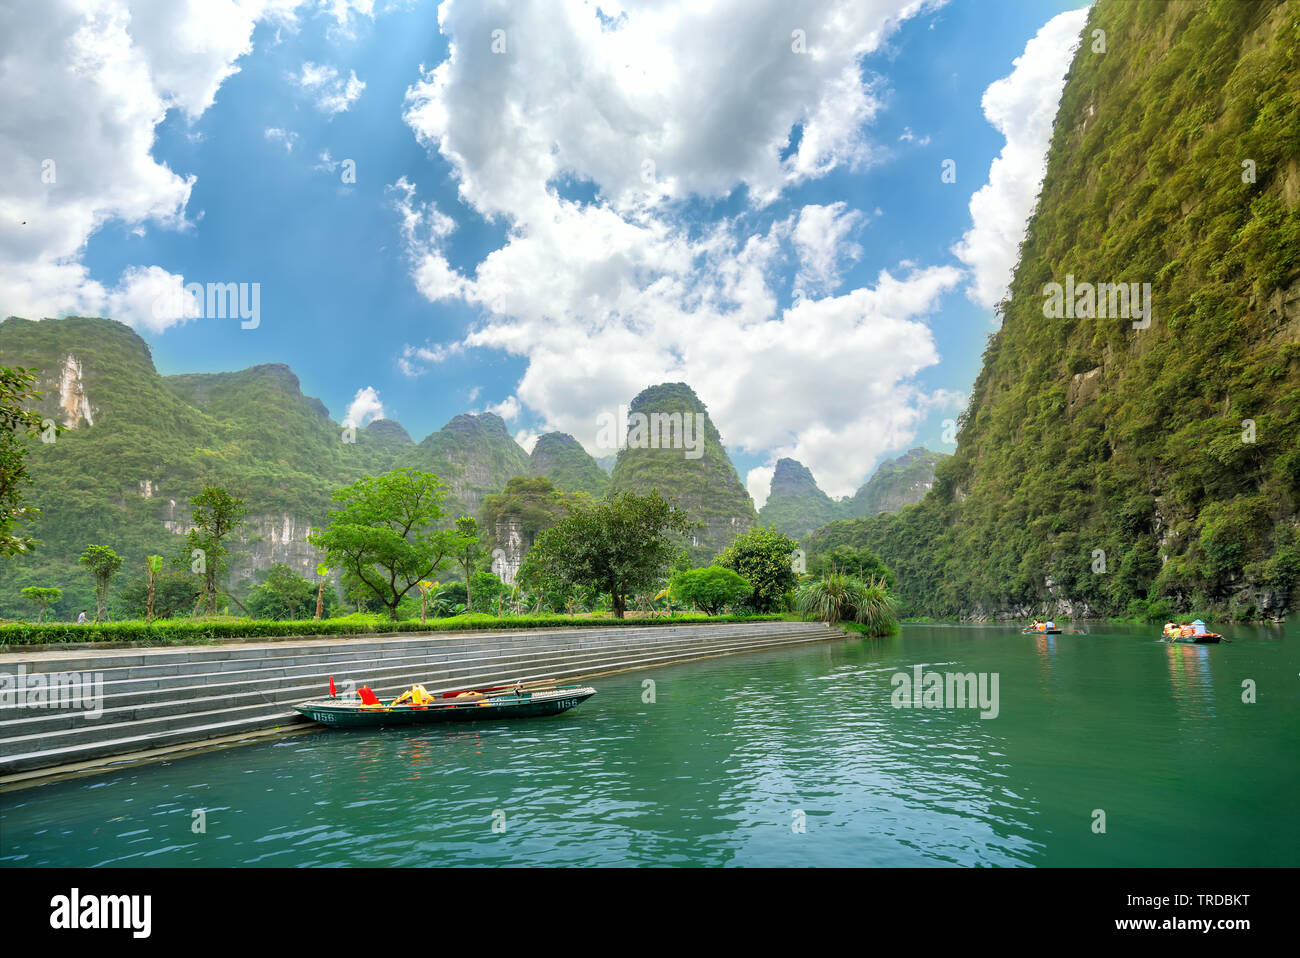 Tourists leaving marina travel to visit Ecotourism the natural landscape in small boat along the river Stock Photo